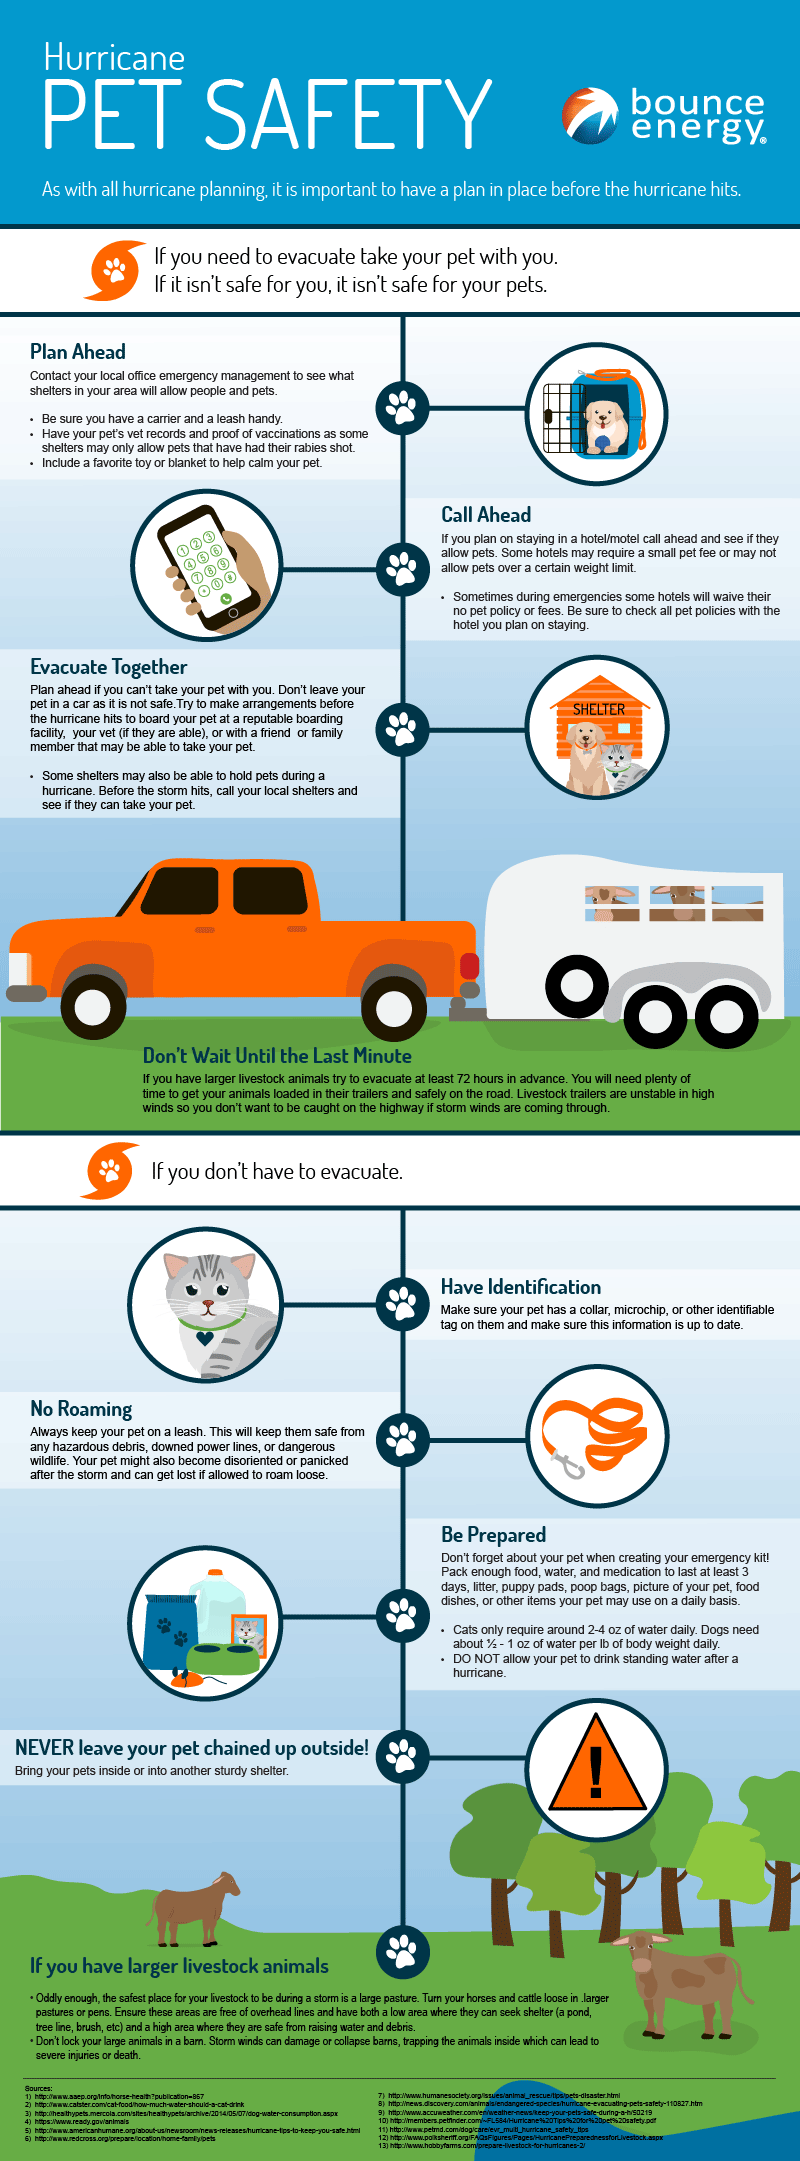 Hurricane Safety for your Pets